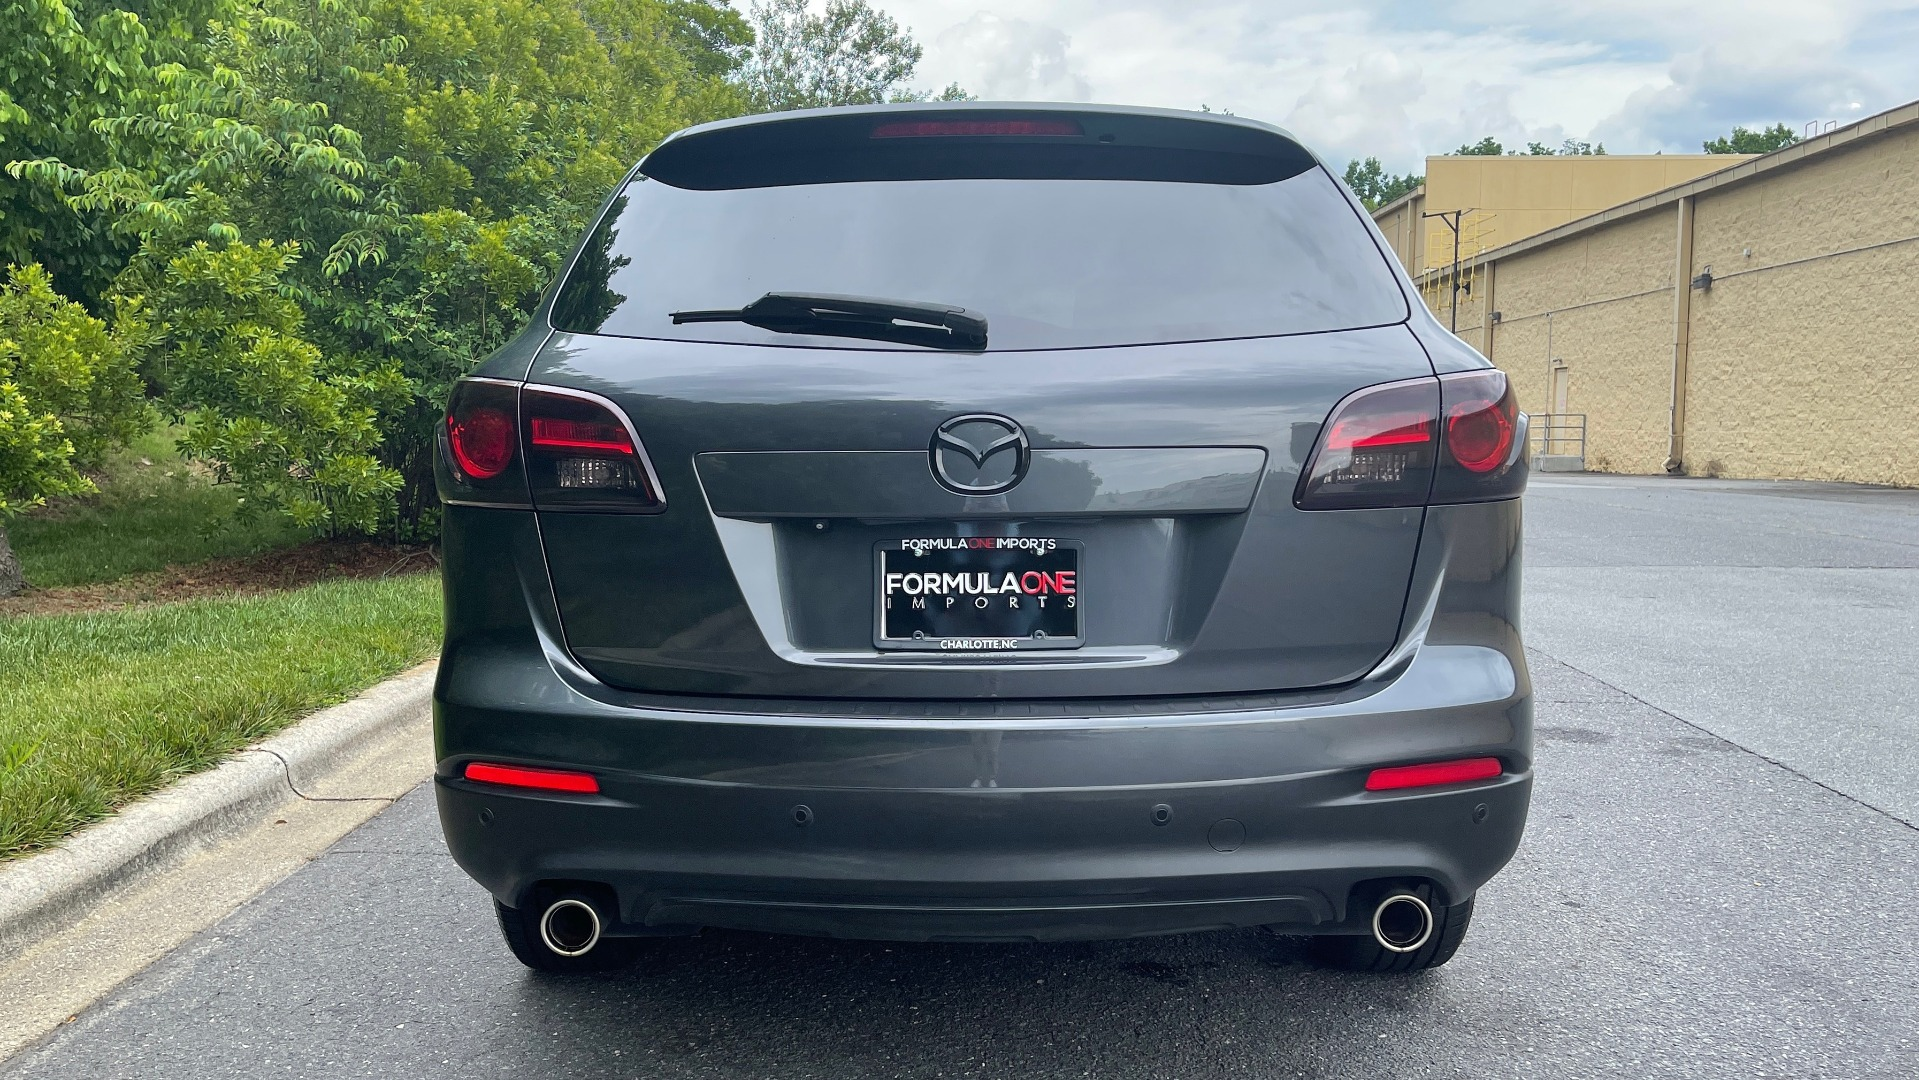 Used 2014 Mazda CX-9 TOURUNG / FWD / 3.7L V6 / 6-SPD AUTO / HTD STS / 3-ROW / REARVIEW for sale $14,995 at Formula Imports in Charlotte NC 28227 17